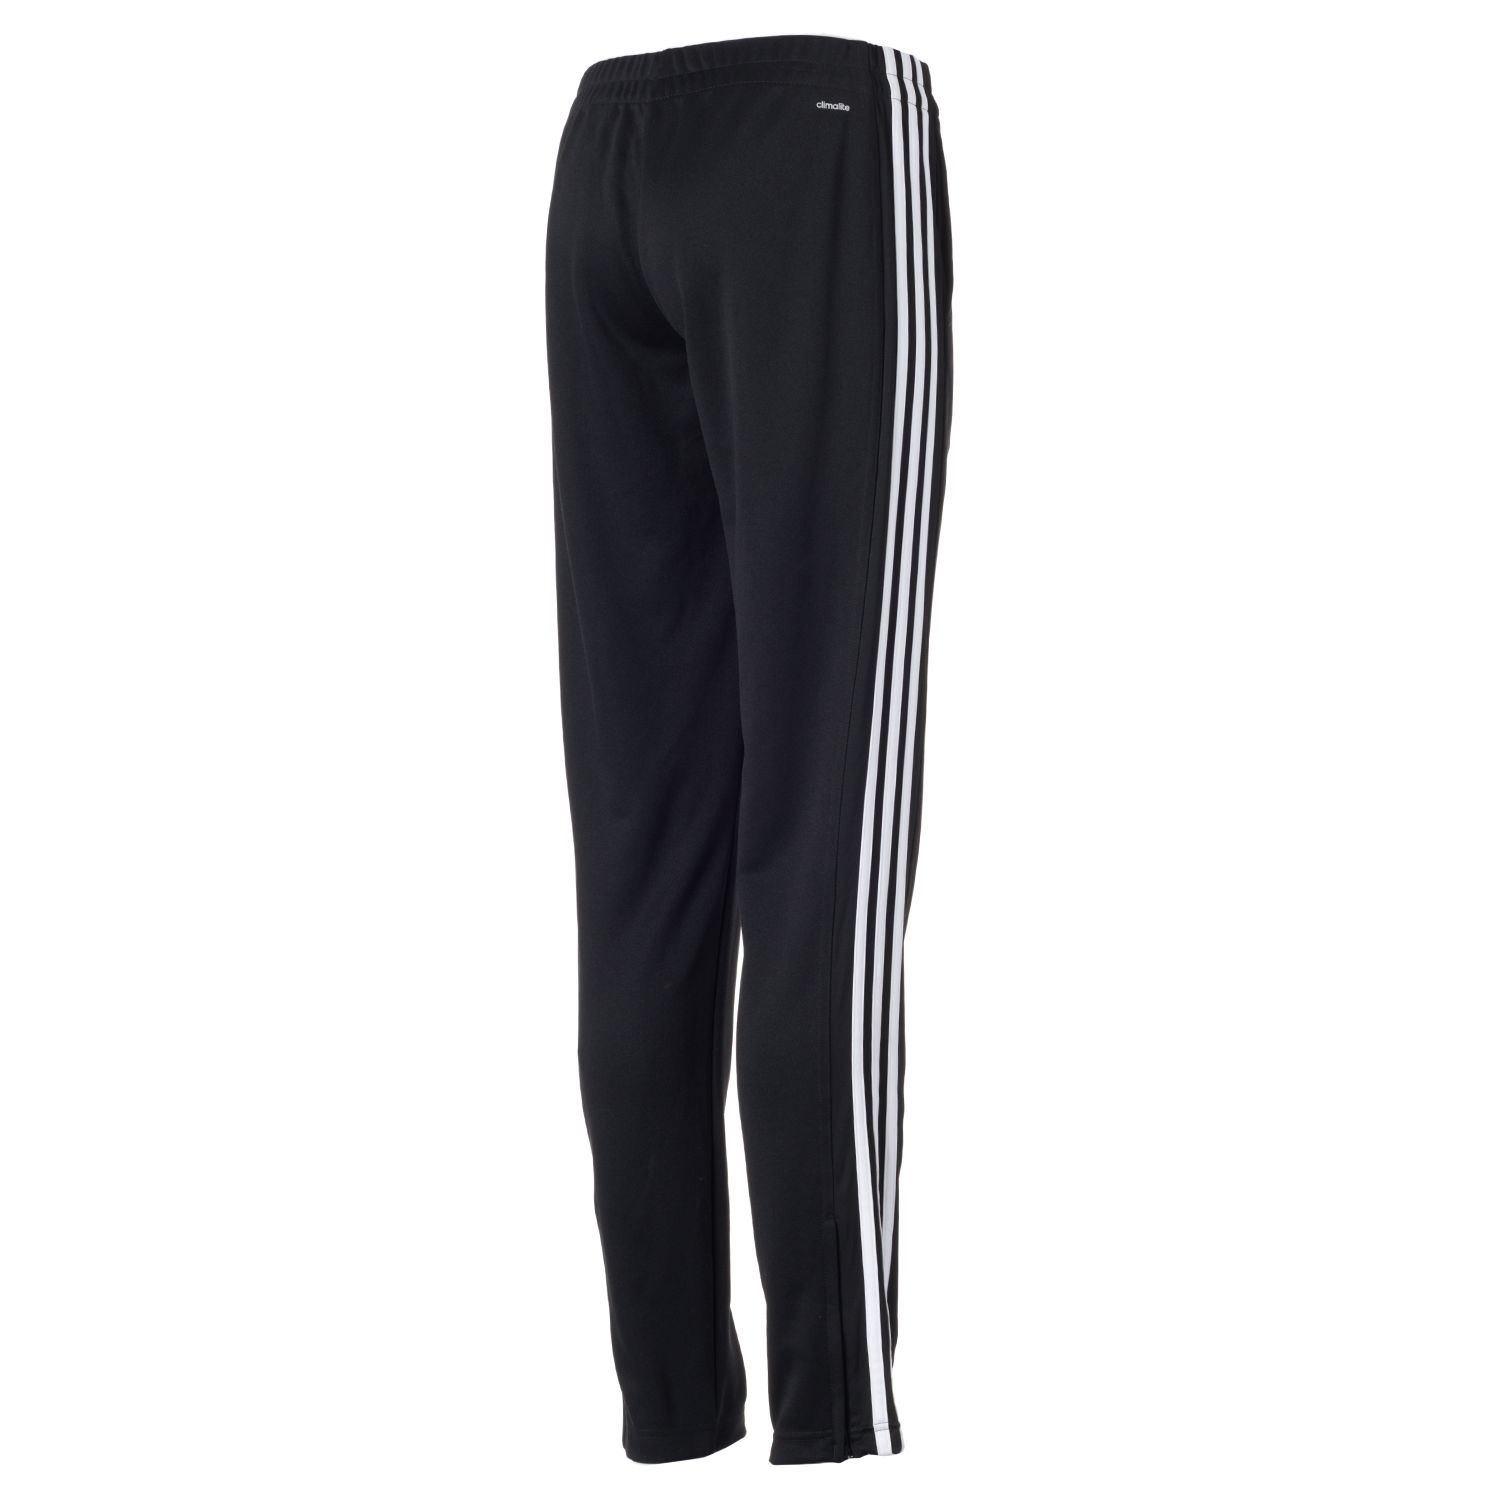 Mujer 1//1 adidas D2m Straight Fitted Knit 3 Stripes Long Pant Pants